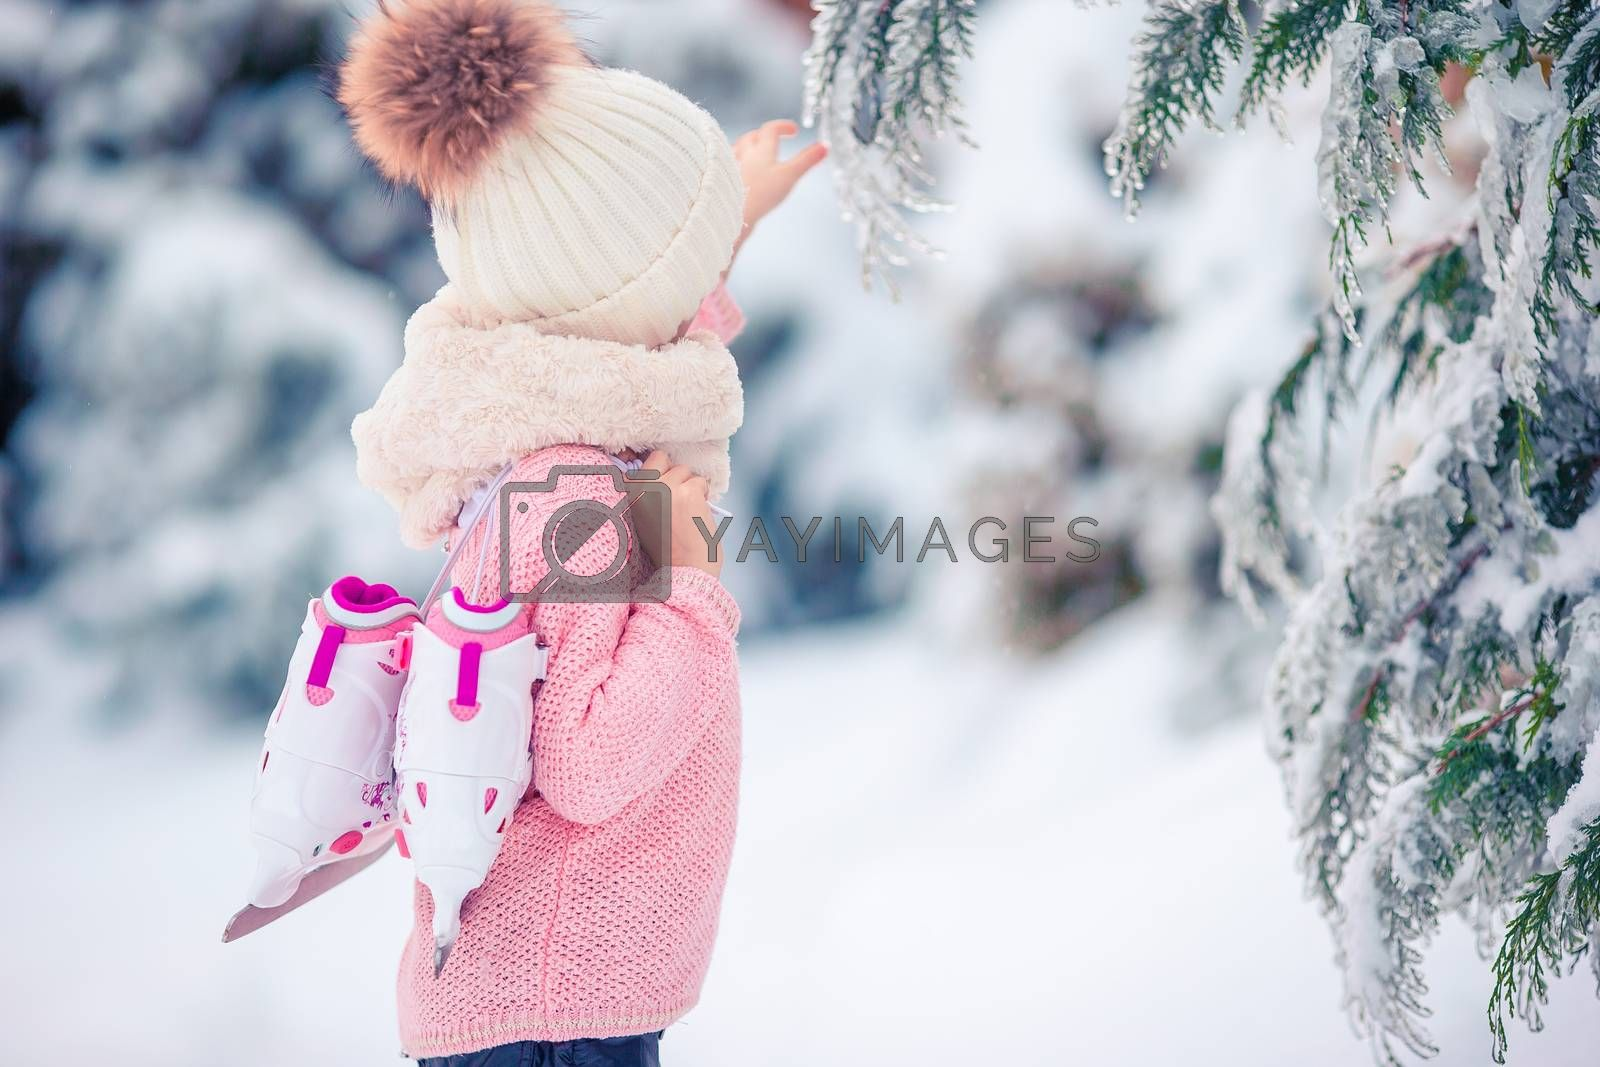 Cutest little girl going to skate in winter snow day outdoors